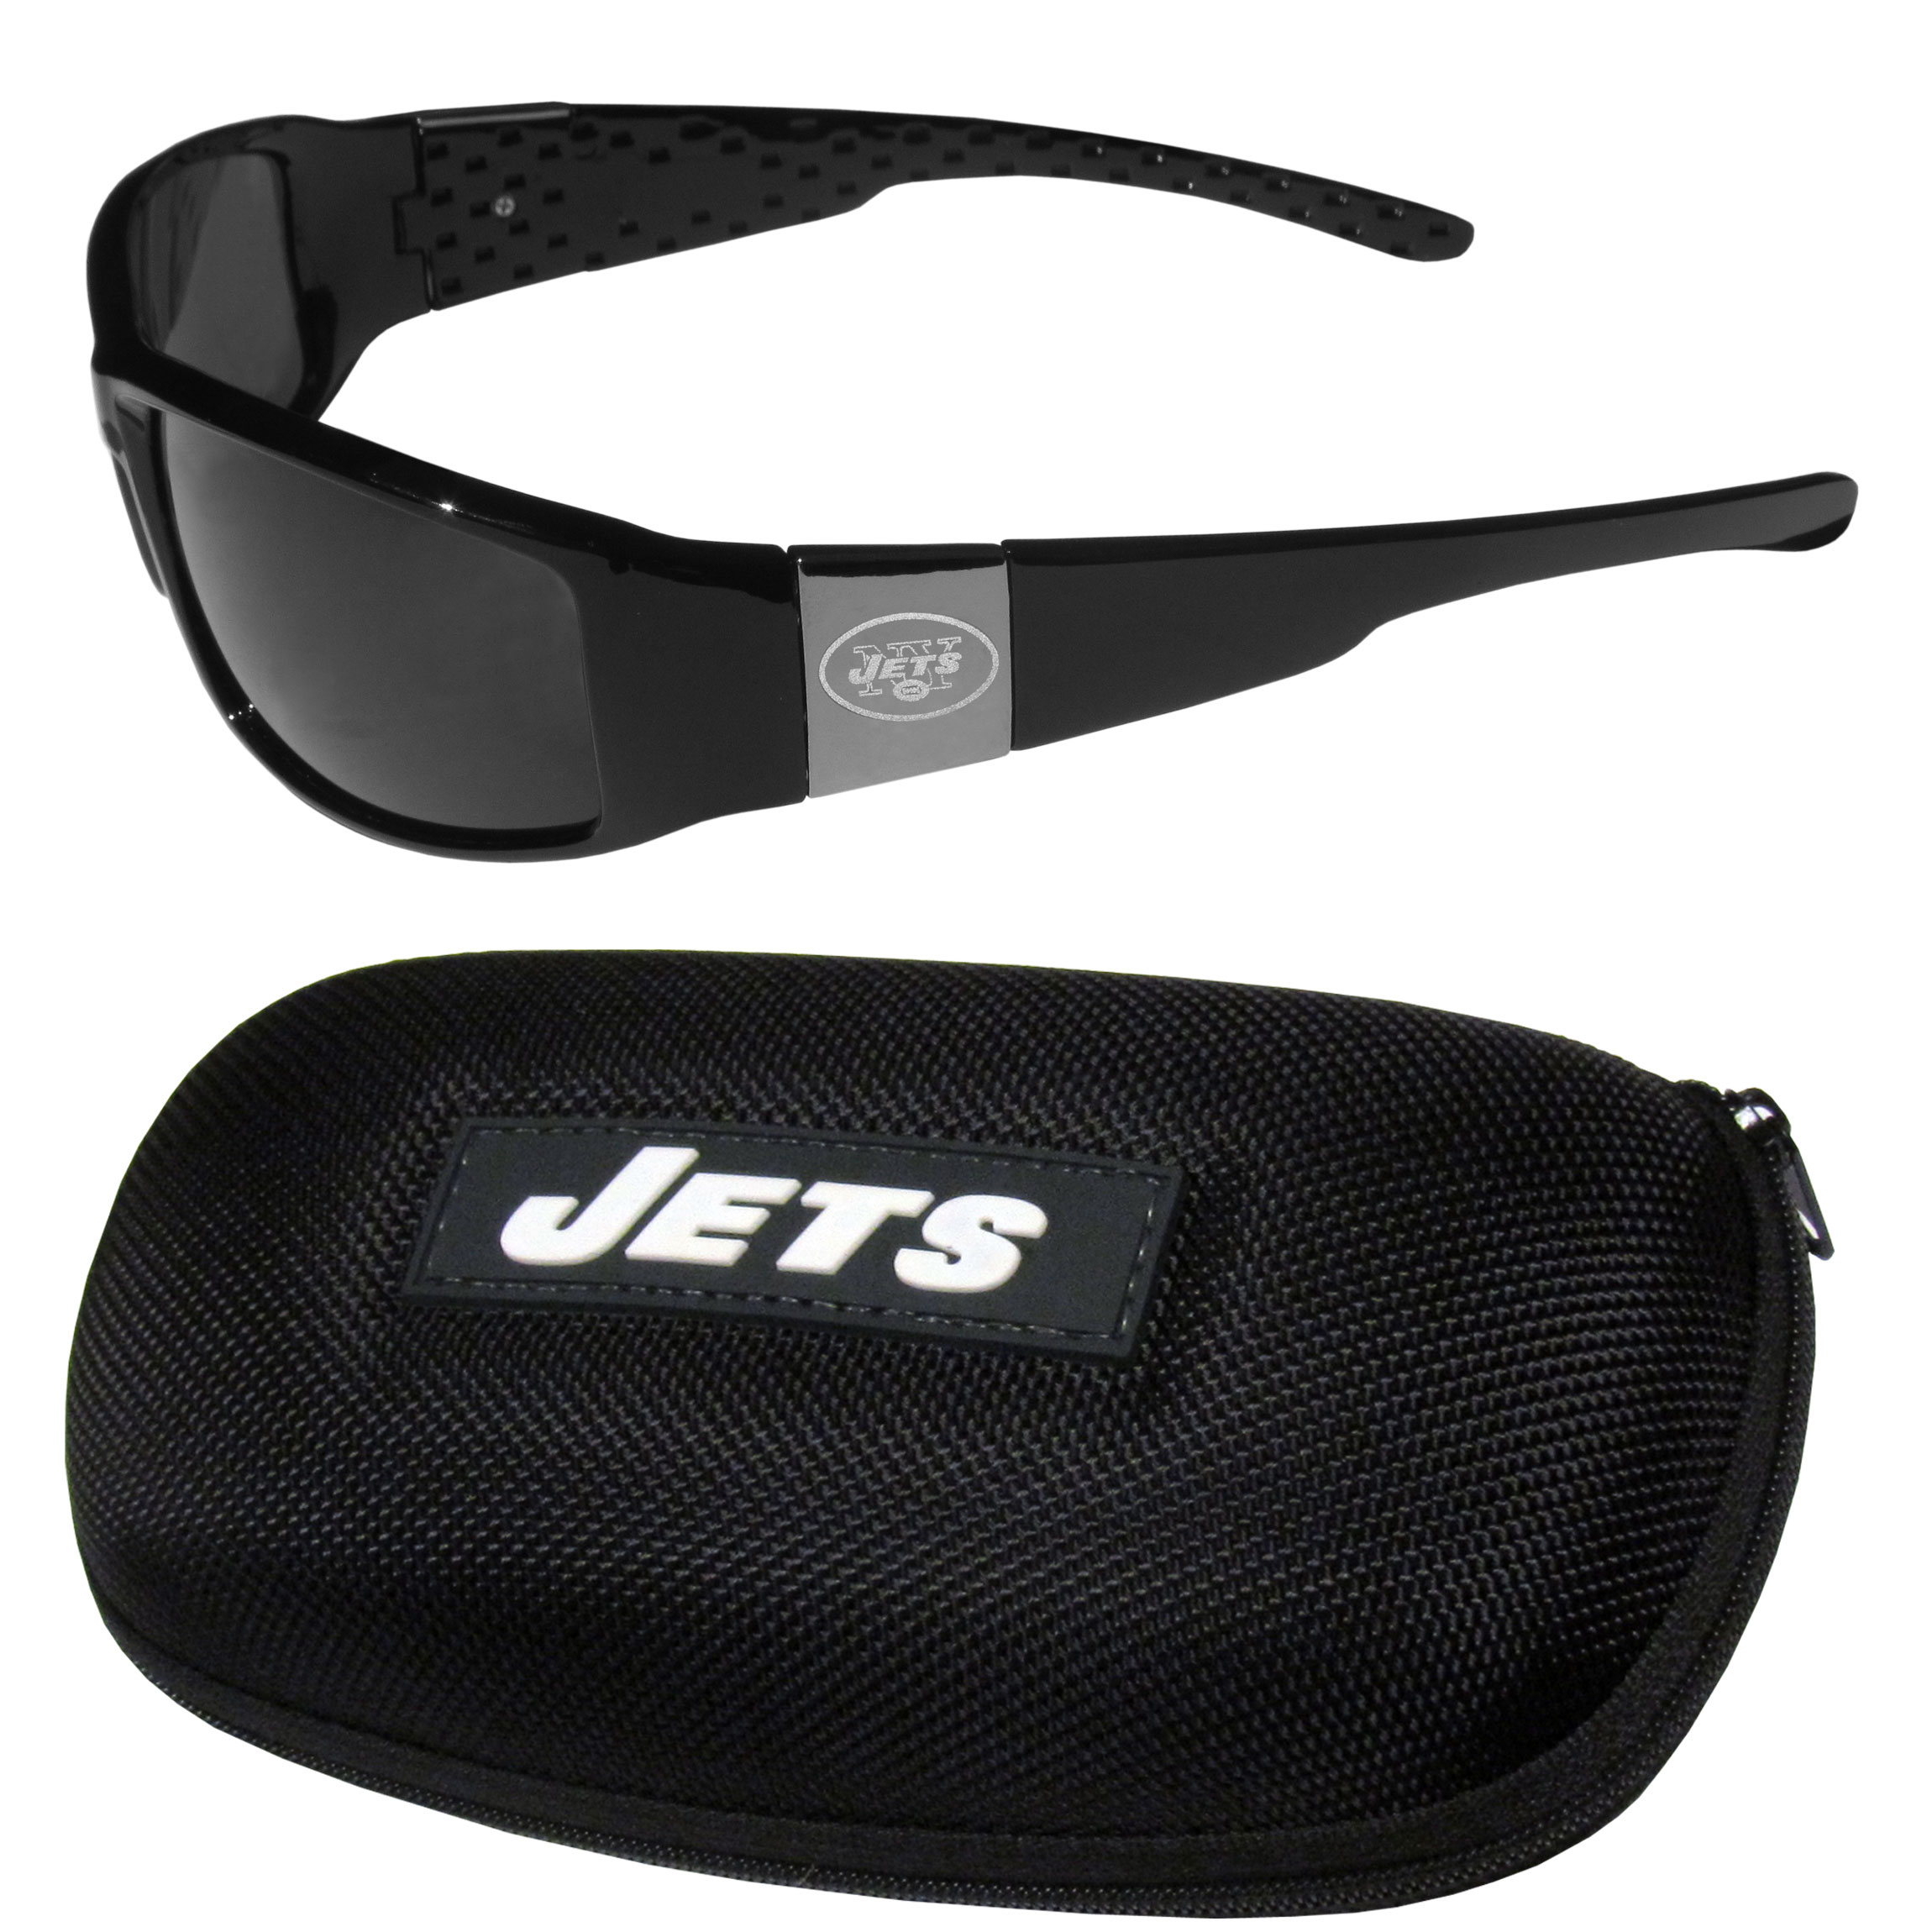 New York Jets Chrome Wrap Sunglasses and Zippered Carrying Case - This set includes our sleek and stylish New York Jets chrome wrap sunglasses and our hard shell, zippered carrying case. The sunglasses feature etched team logos on each arm and 100% UVA/UVB protection. The case features a large and colorful team emblem.